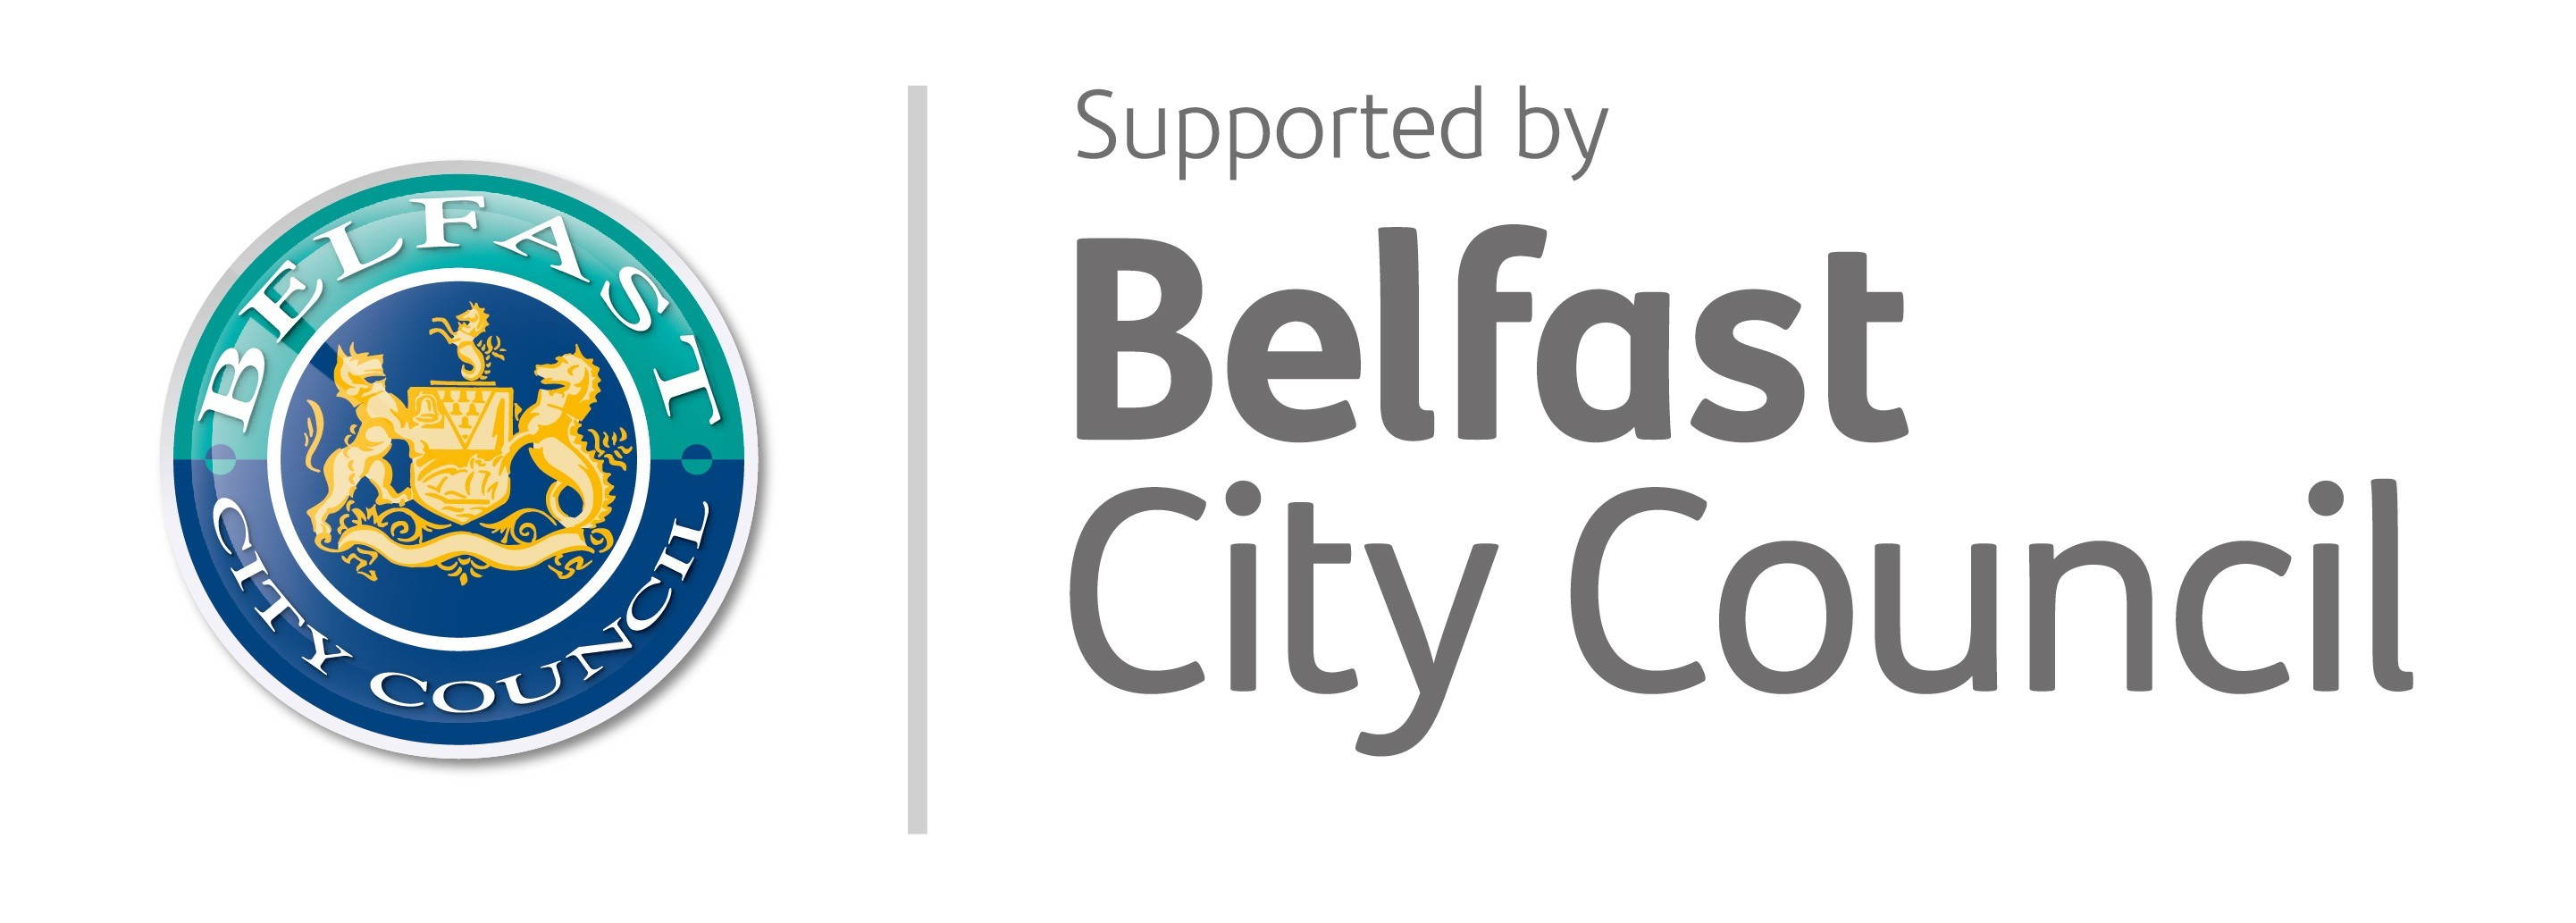 Supported-by-Belfast-City-Council-Master-logo.jpg?mtime=20210210114619#asset:1835